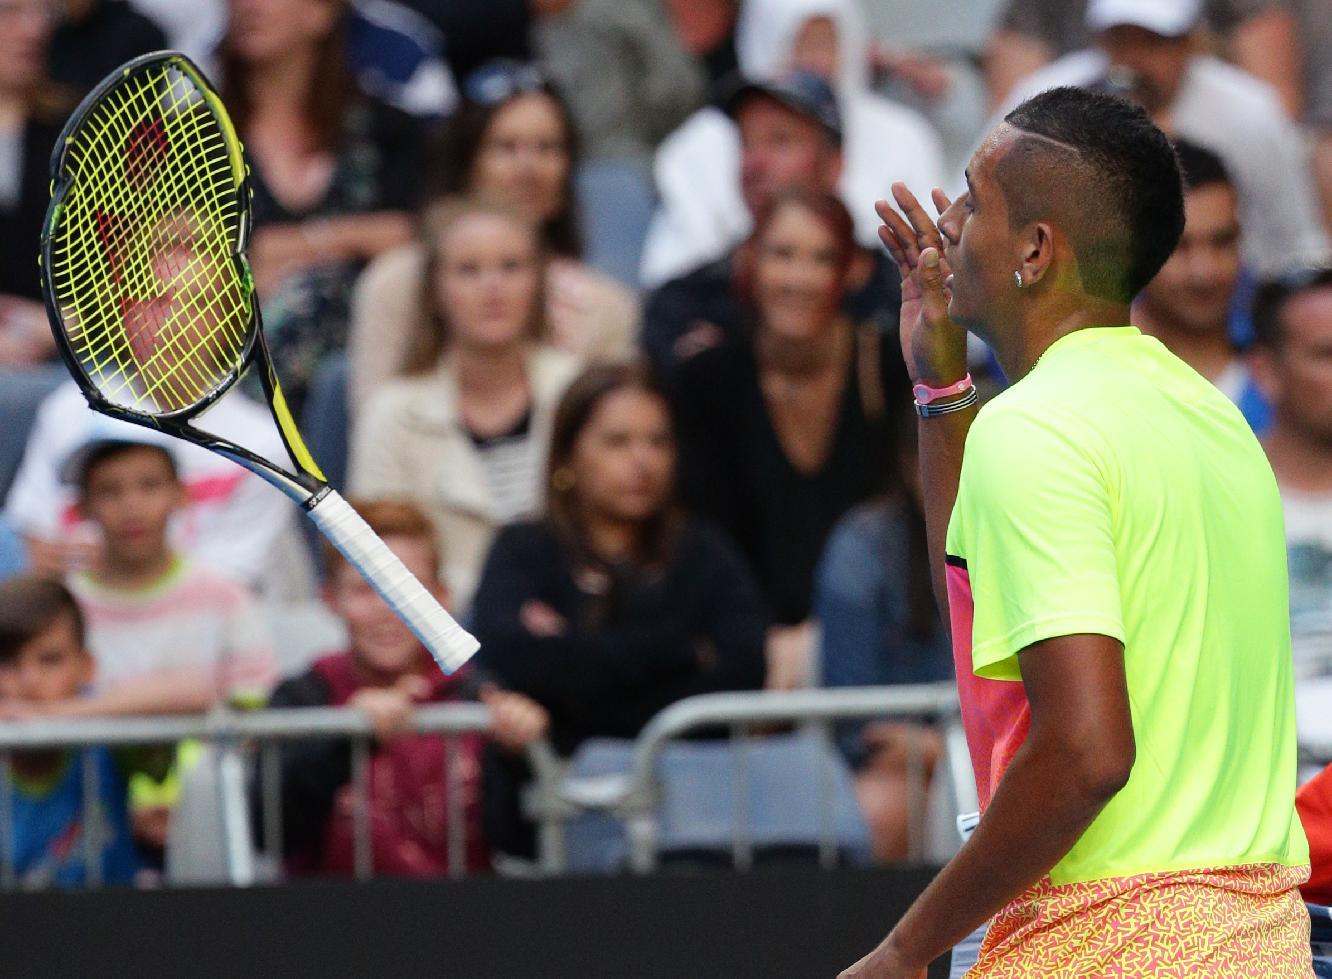 Emotional or not, Kyrgios puts on a show at Aussie Open